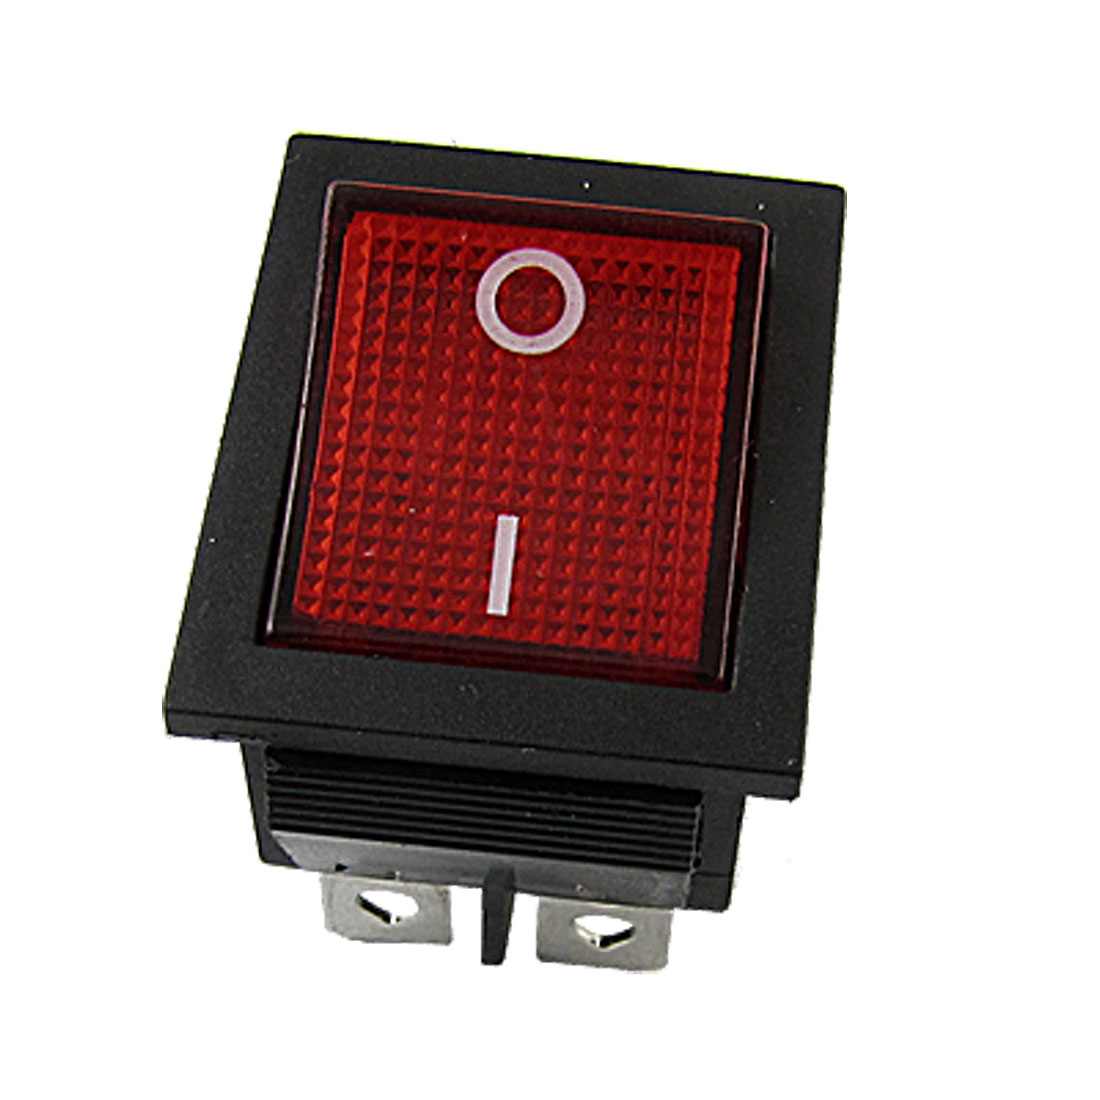 Red Light Illuminated 6 Pin DPDT ON-ON Snap in Boat Rocker Switch 20A/125V 16A/250V AC